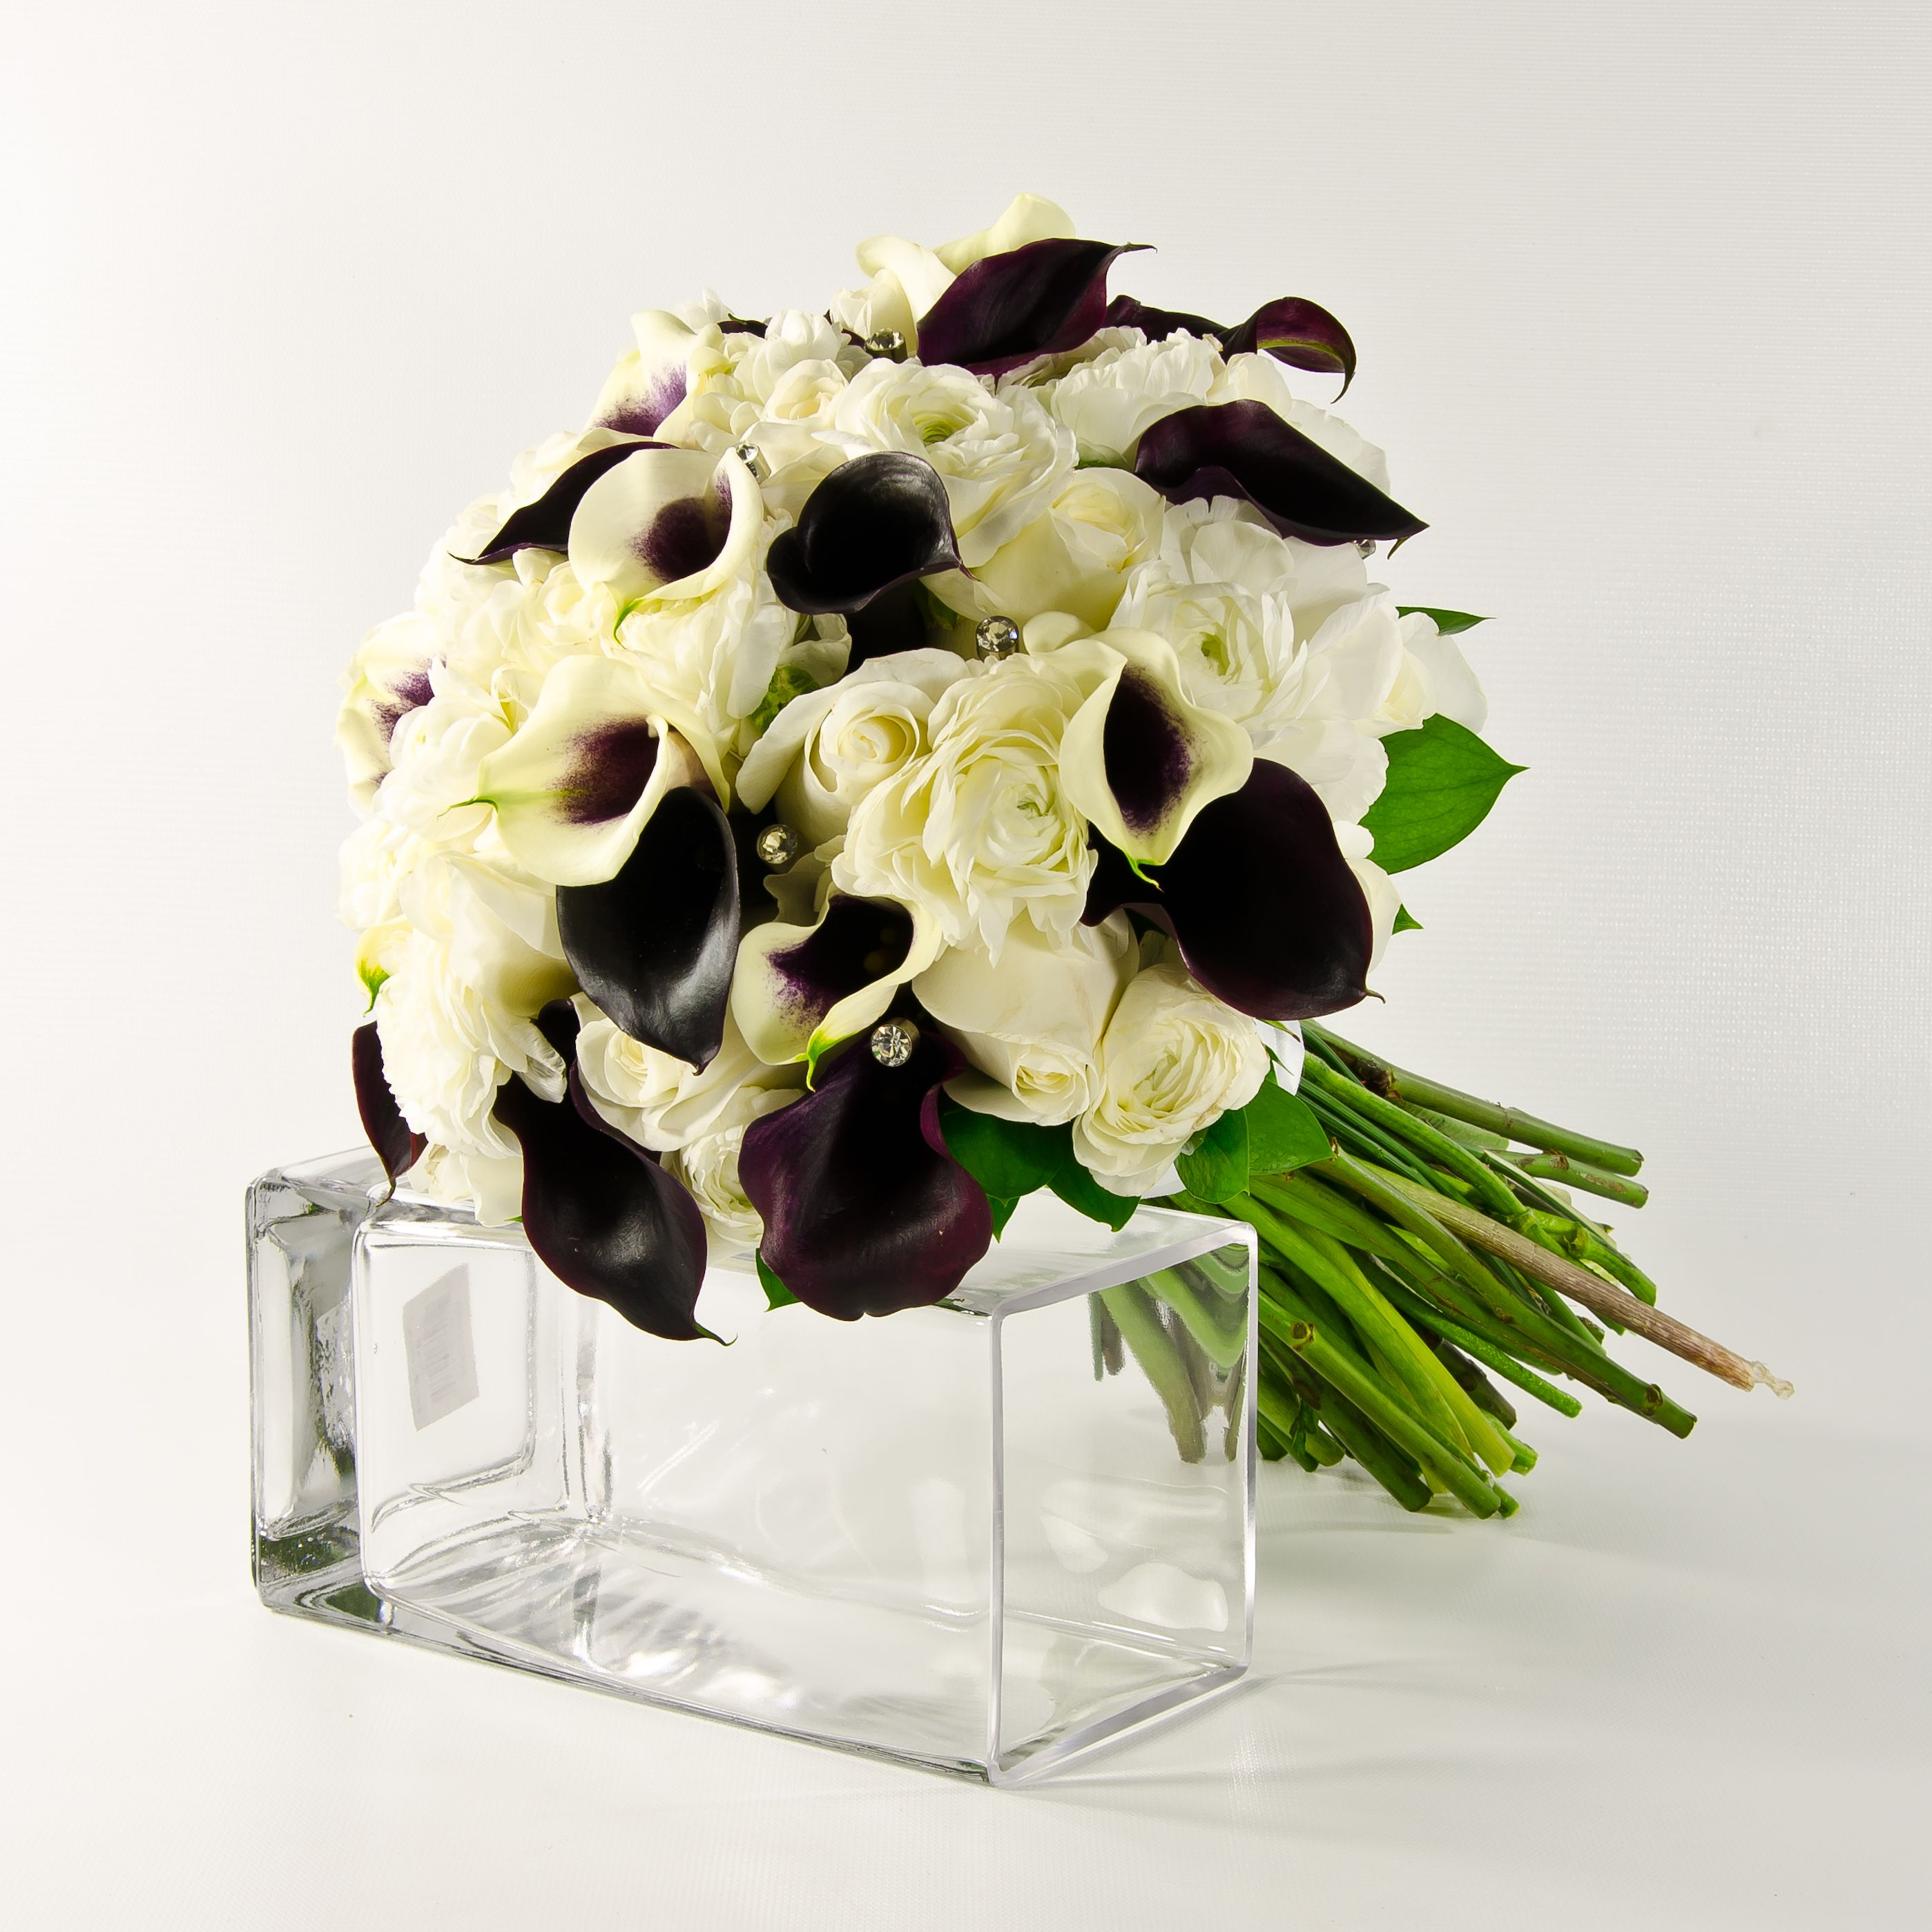 Obi Wandfarbe Mischen Amazing Updated With Farben: Purple And White Calla Lily/ Rose Bouquet